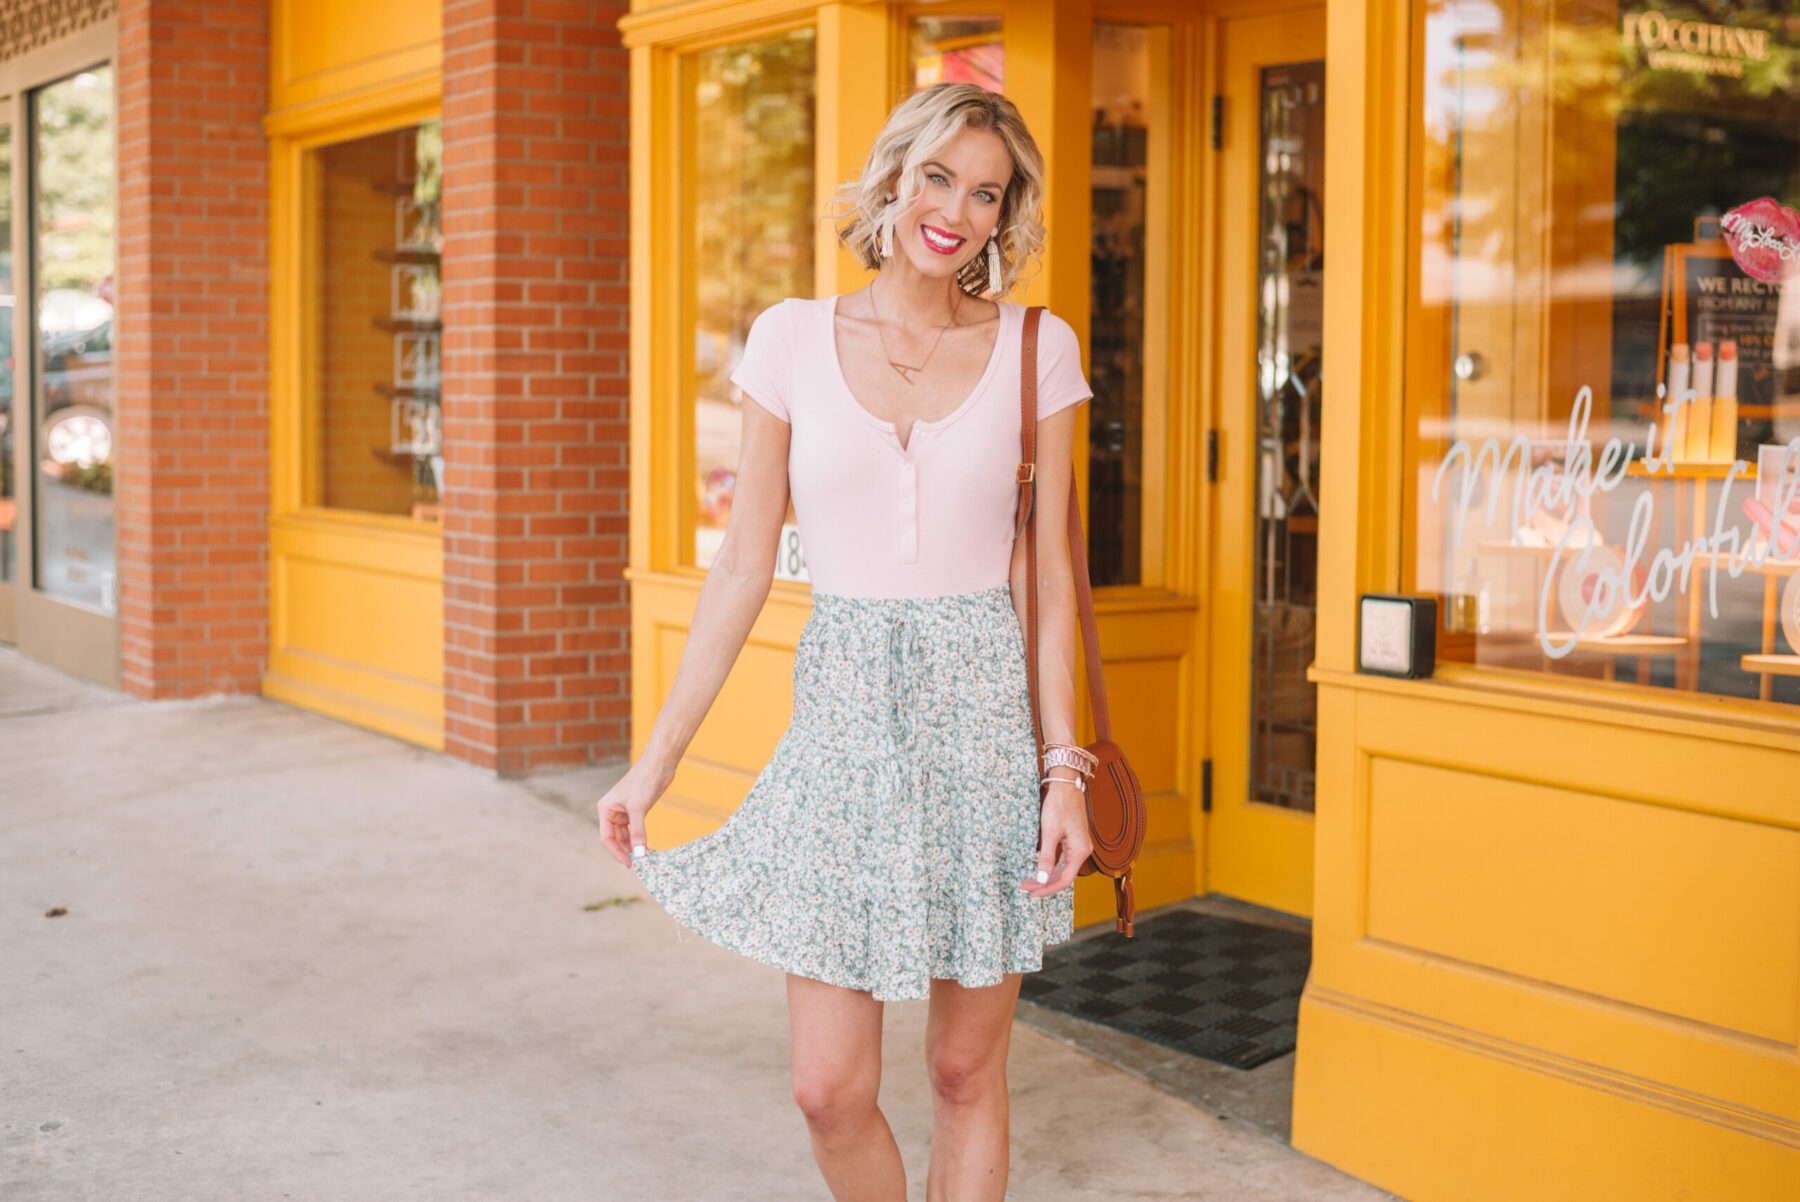 1e080f805b The Best Amazon Fashion Finds - Nothing Over $35 - Straight A Style